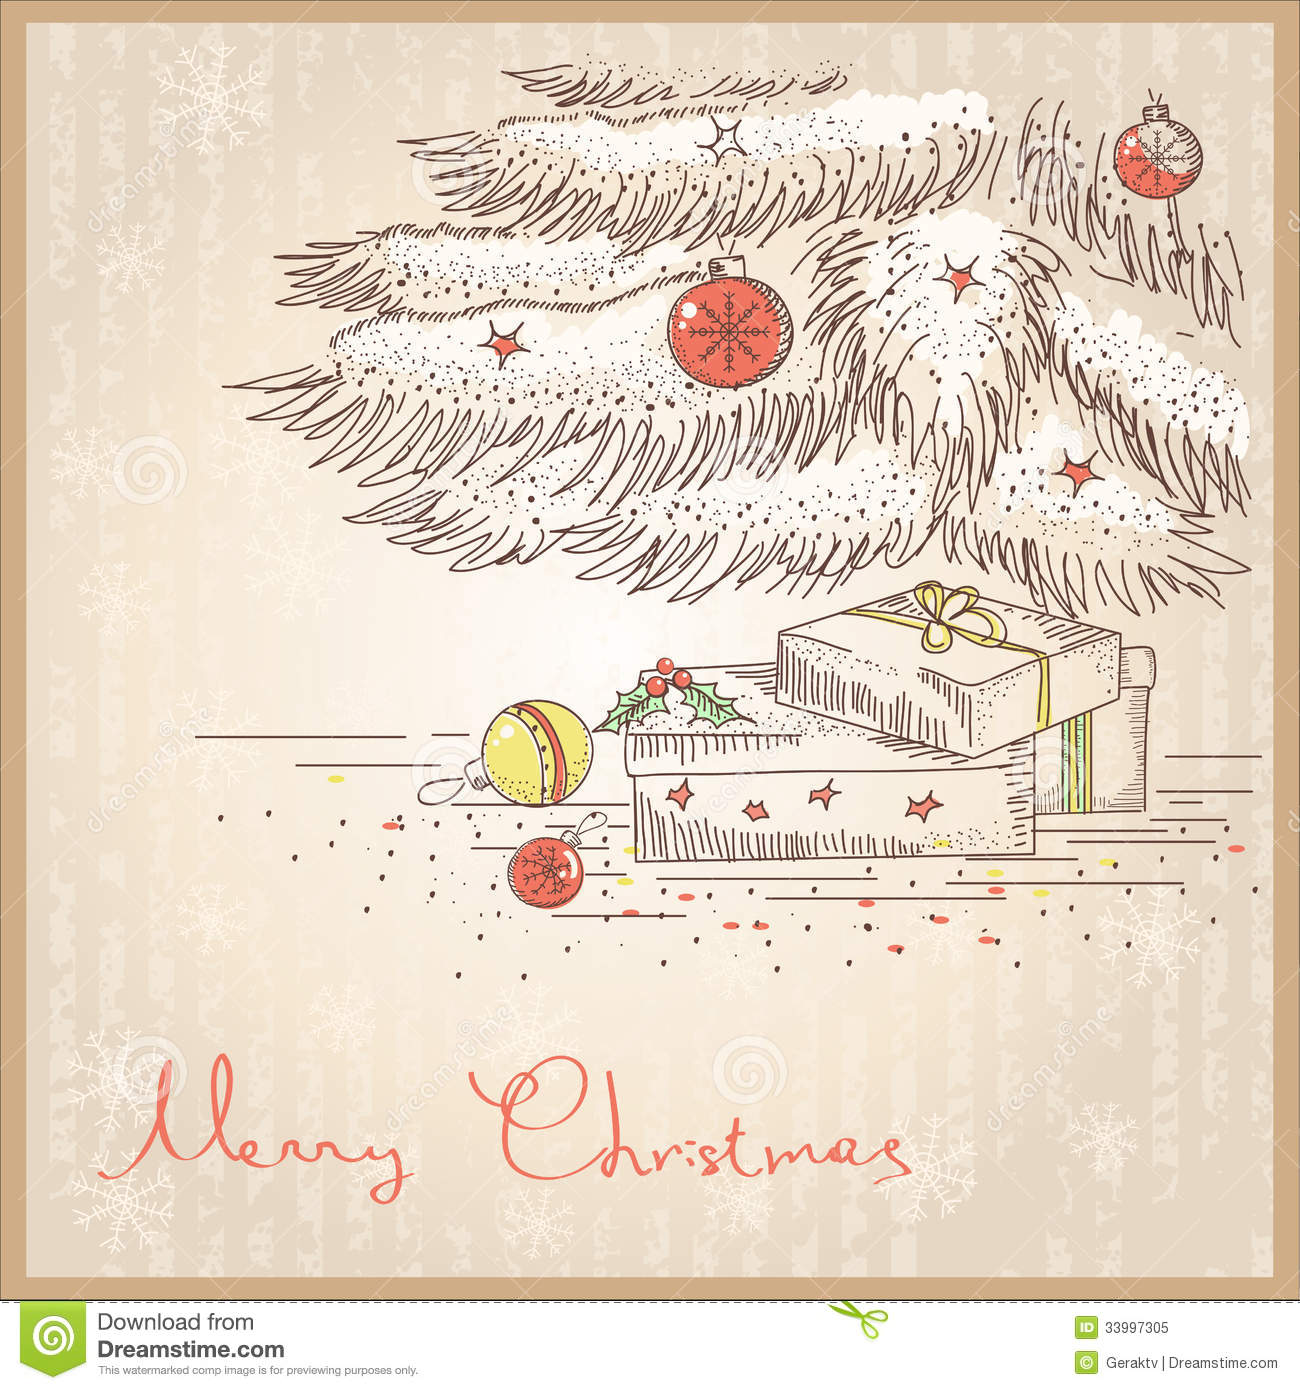 Drawings Of Christmas Presents.Christmas Card With Gifts And Presents Vector Draw Stock